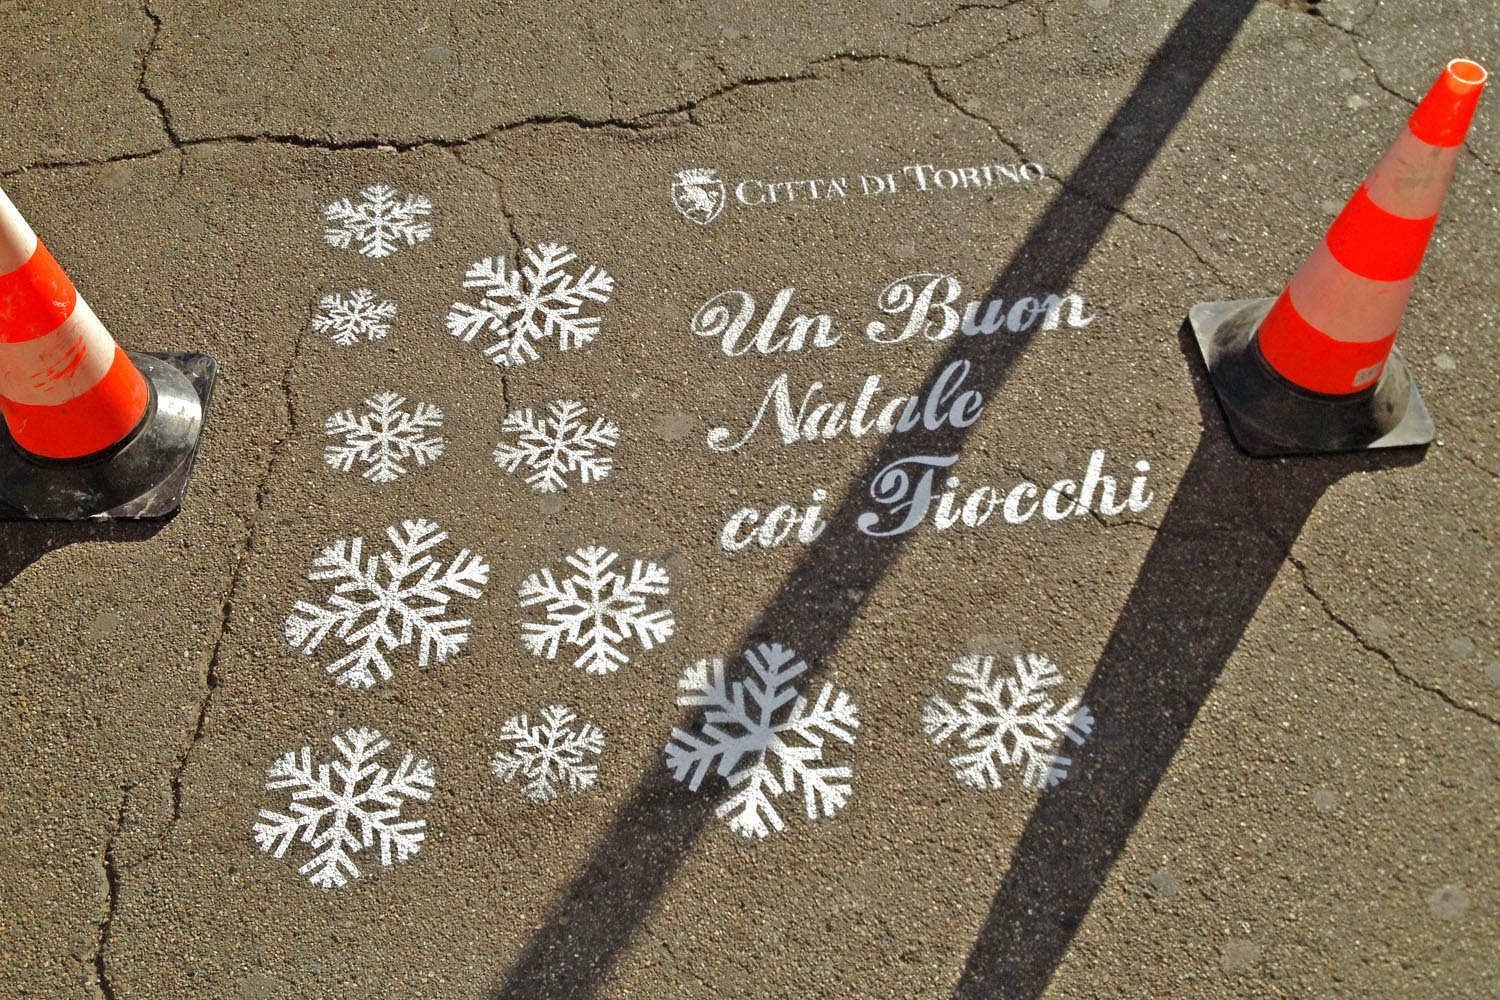 street marketing torino